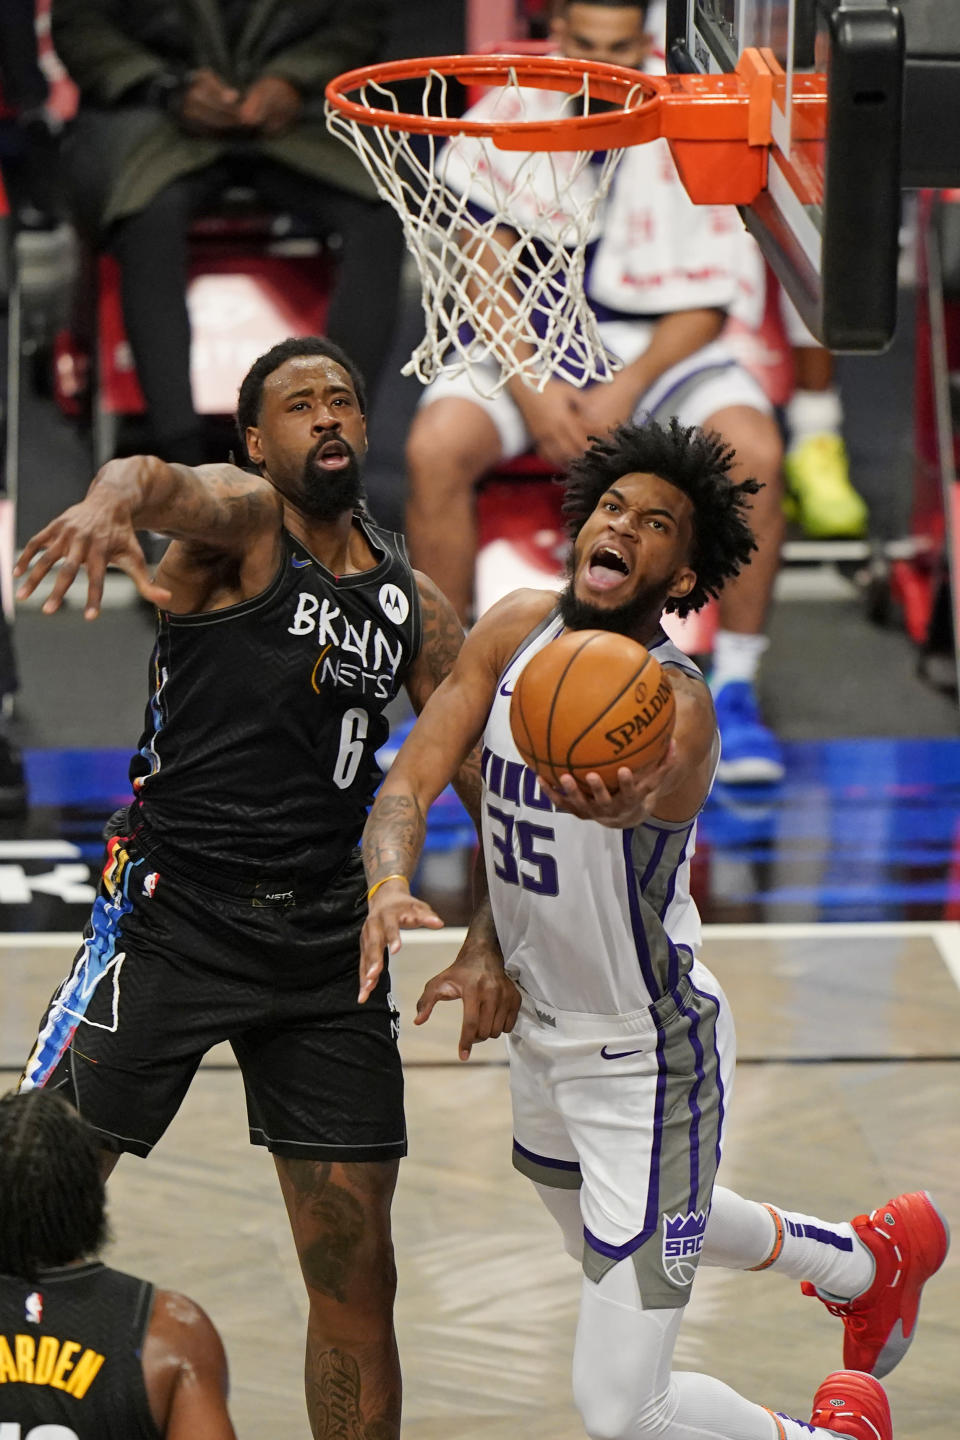 Brooklyn Nets center DeAndre Jordan (6) defends Sacramento Kings forward Marvin Bagley III (35) as Bagley goes up for a layup during the first quarter of an NBA basketball game, Tuesday, Feb. 23, 2021, in New York. (AP Photo/Kathy Willens)